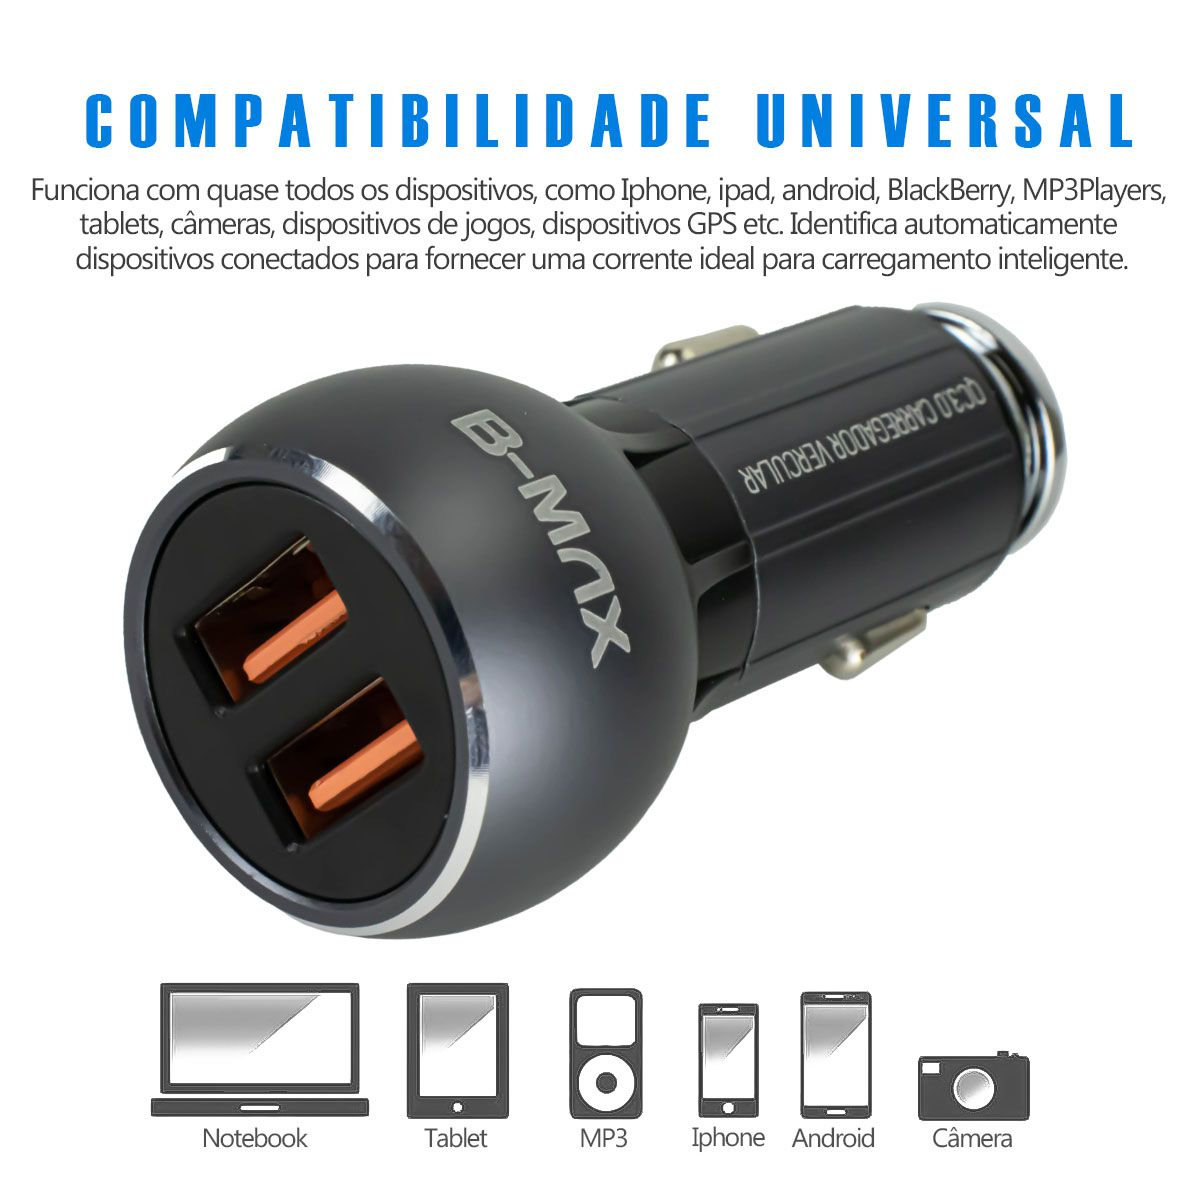 KIT 2x Carregador Veicular Turbo Quick Charge 3.0 36w para Iphone Lightning B-Max BM8611